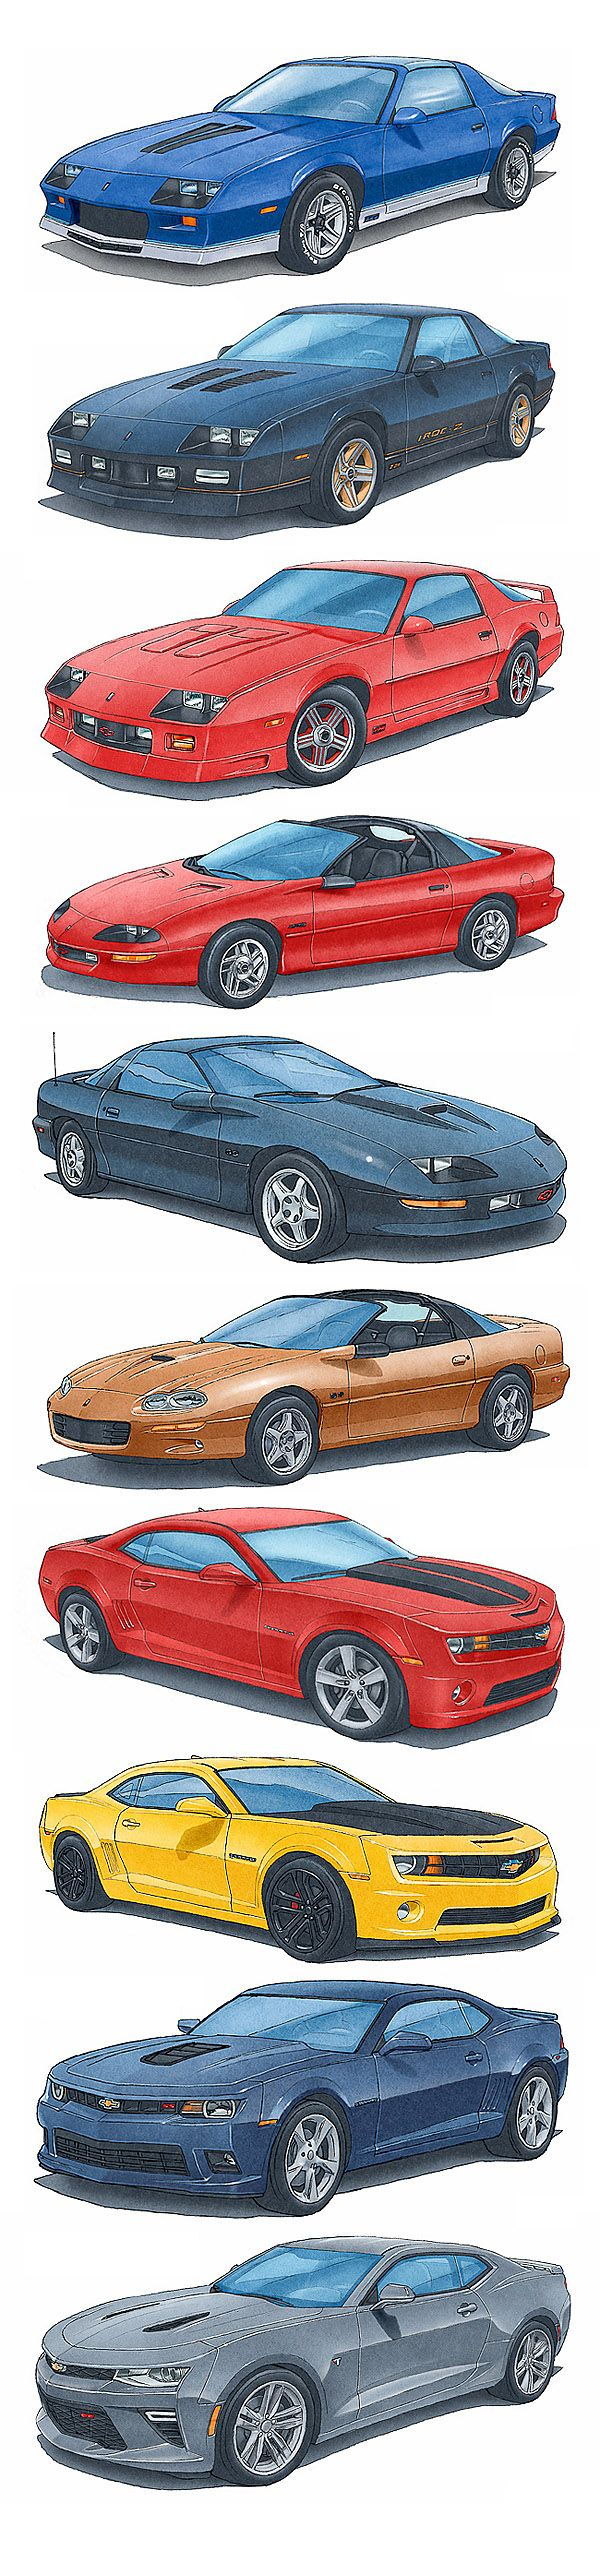 The most powerful Camaro Z28 and SS from 1982 to 2016.  Artwork by Alain Lemire  #camaro #camaroz28 #camaroirocz #camaross